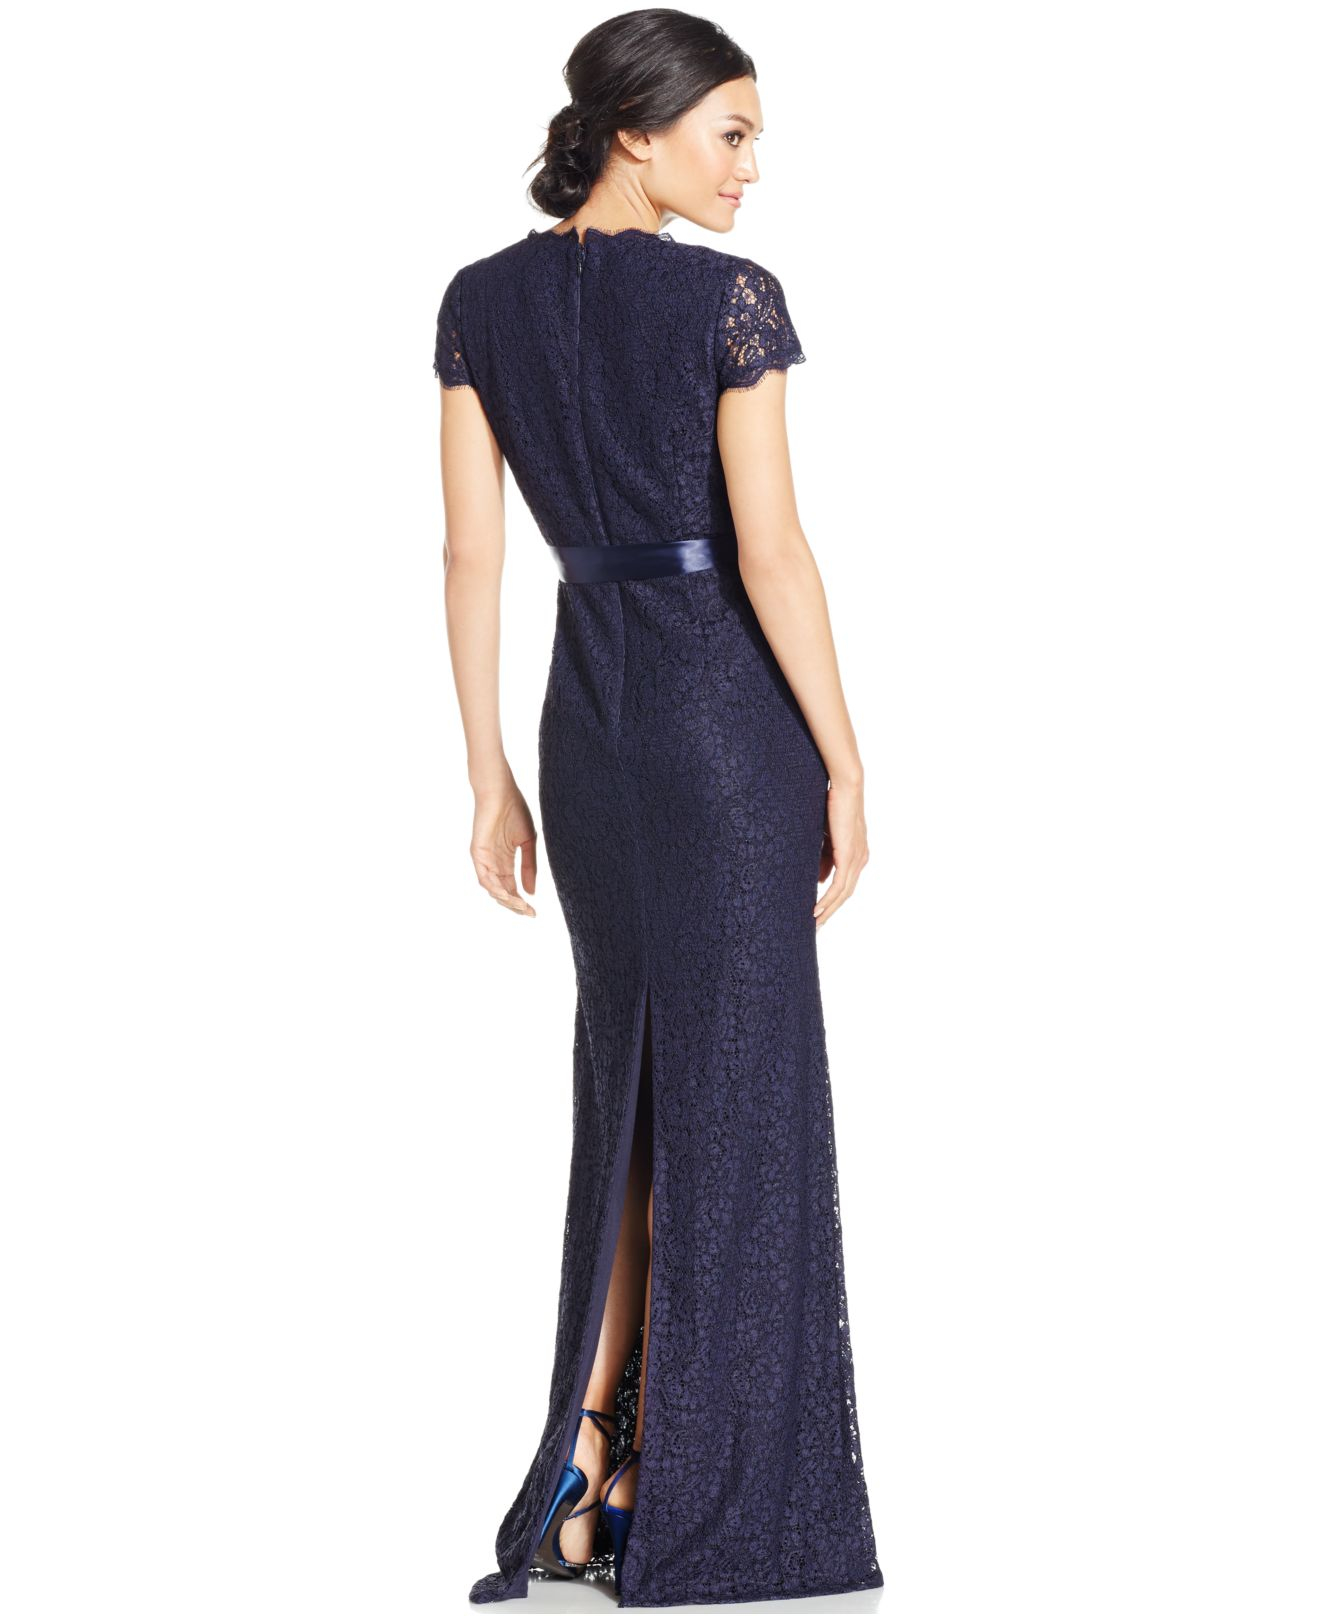 Lyst - Adrianna Papell Cap-sleeve Lace Gown in Blue